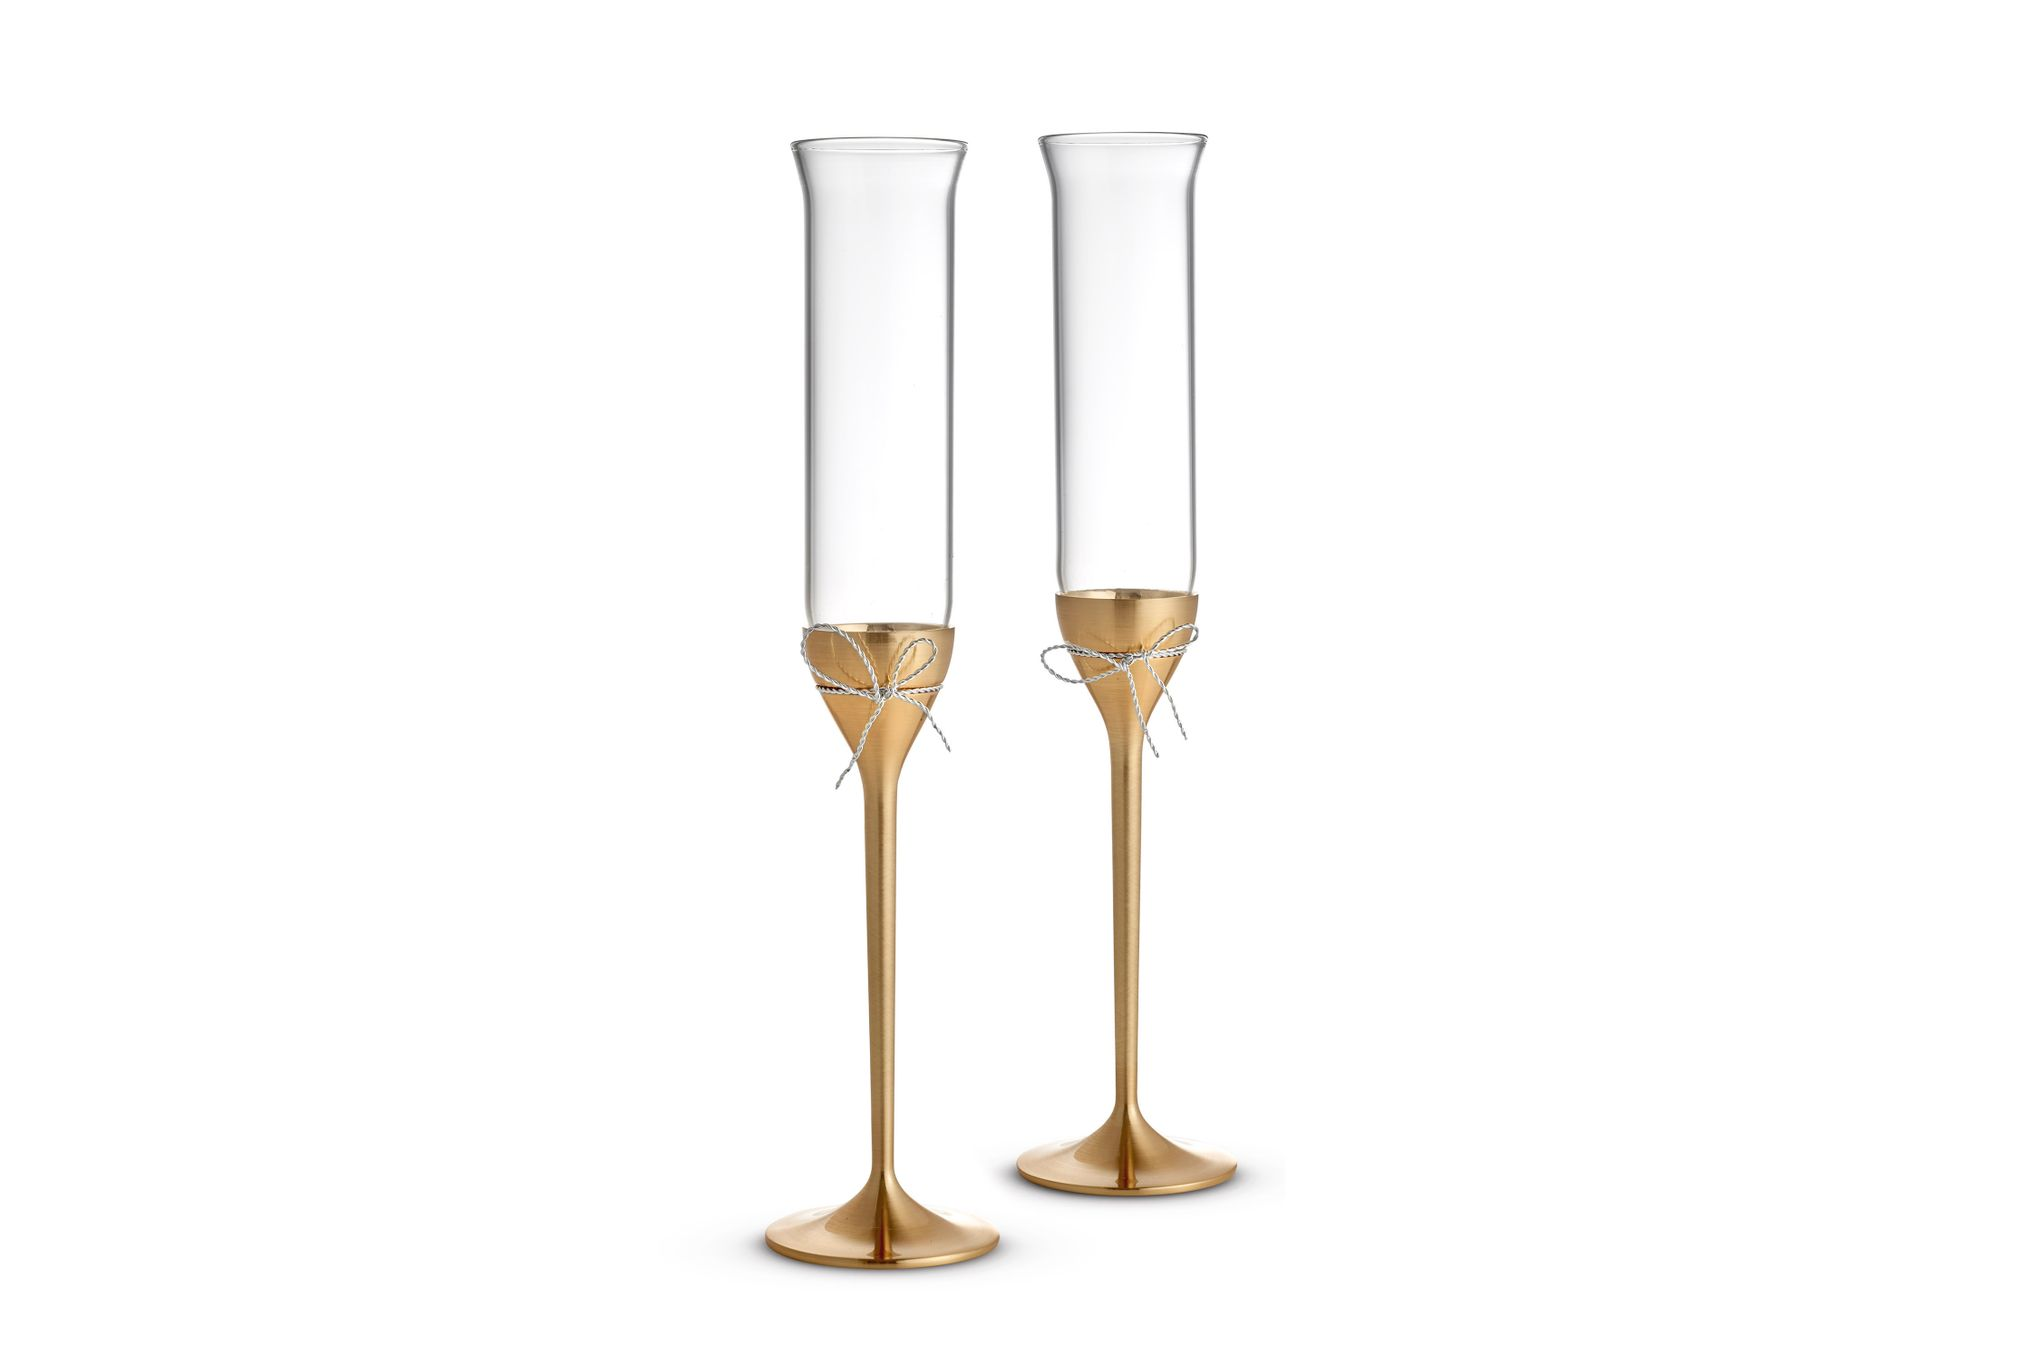 Vera Wang for Wedgwood Gifts & Accessories Toasting Flute Pair Love Knots Gold thumb 1